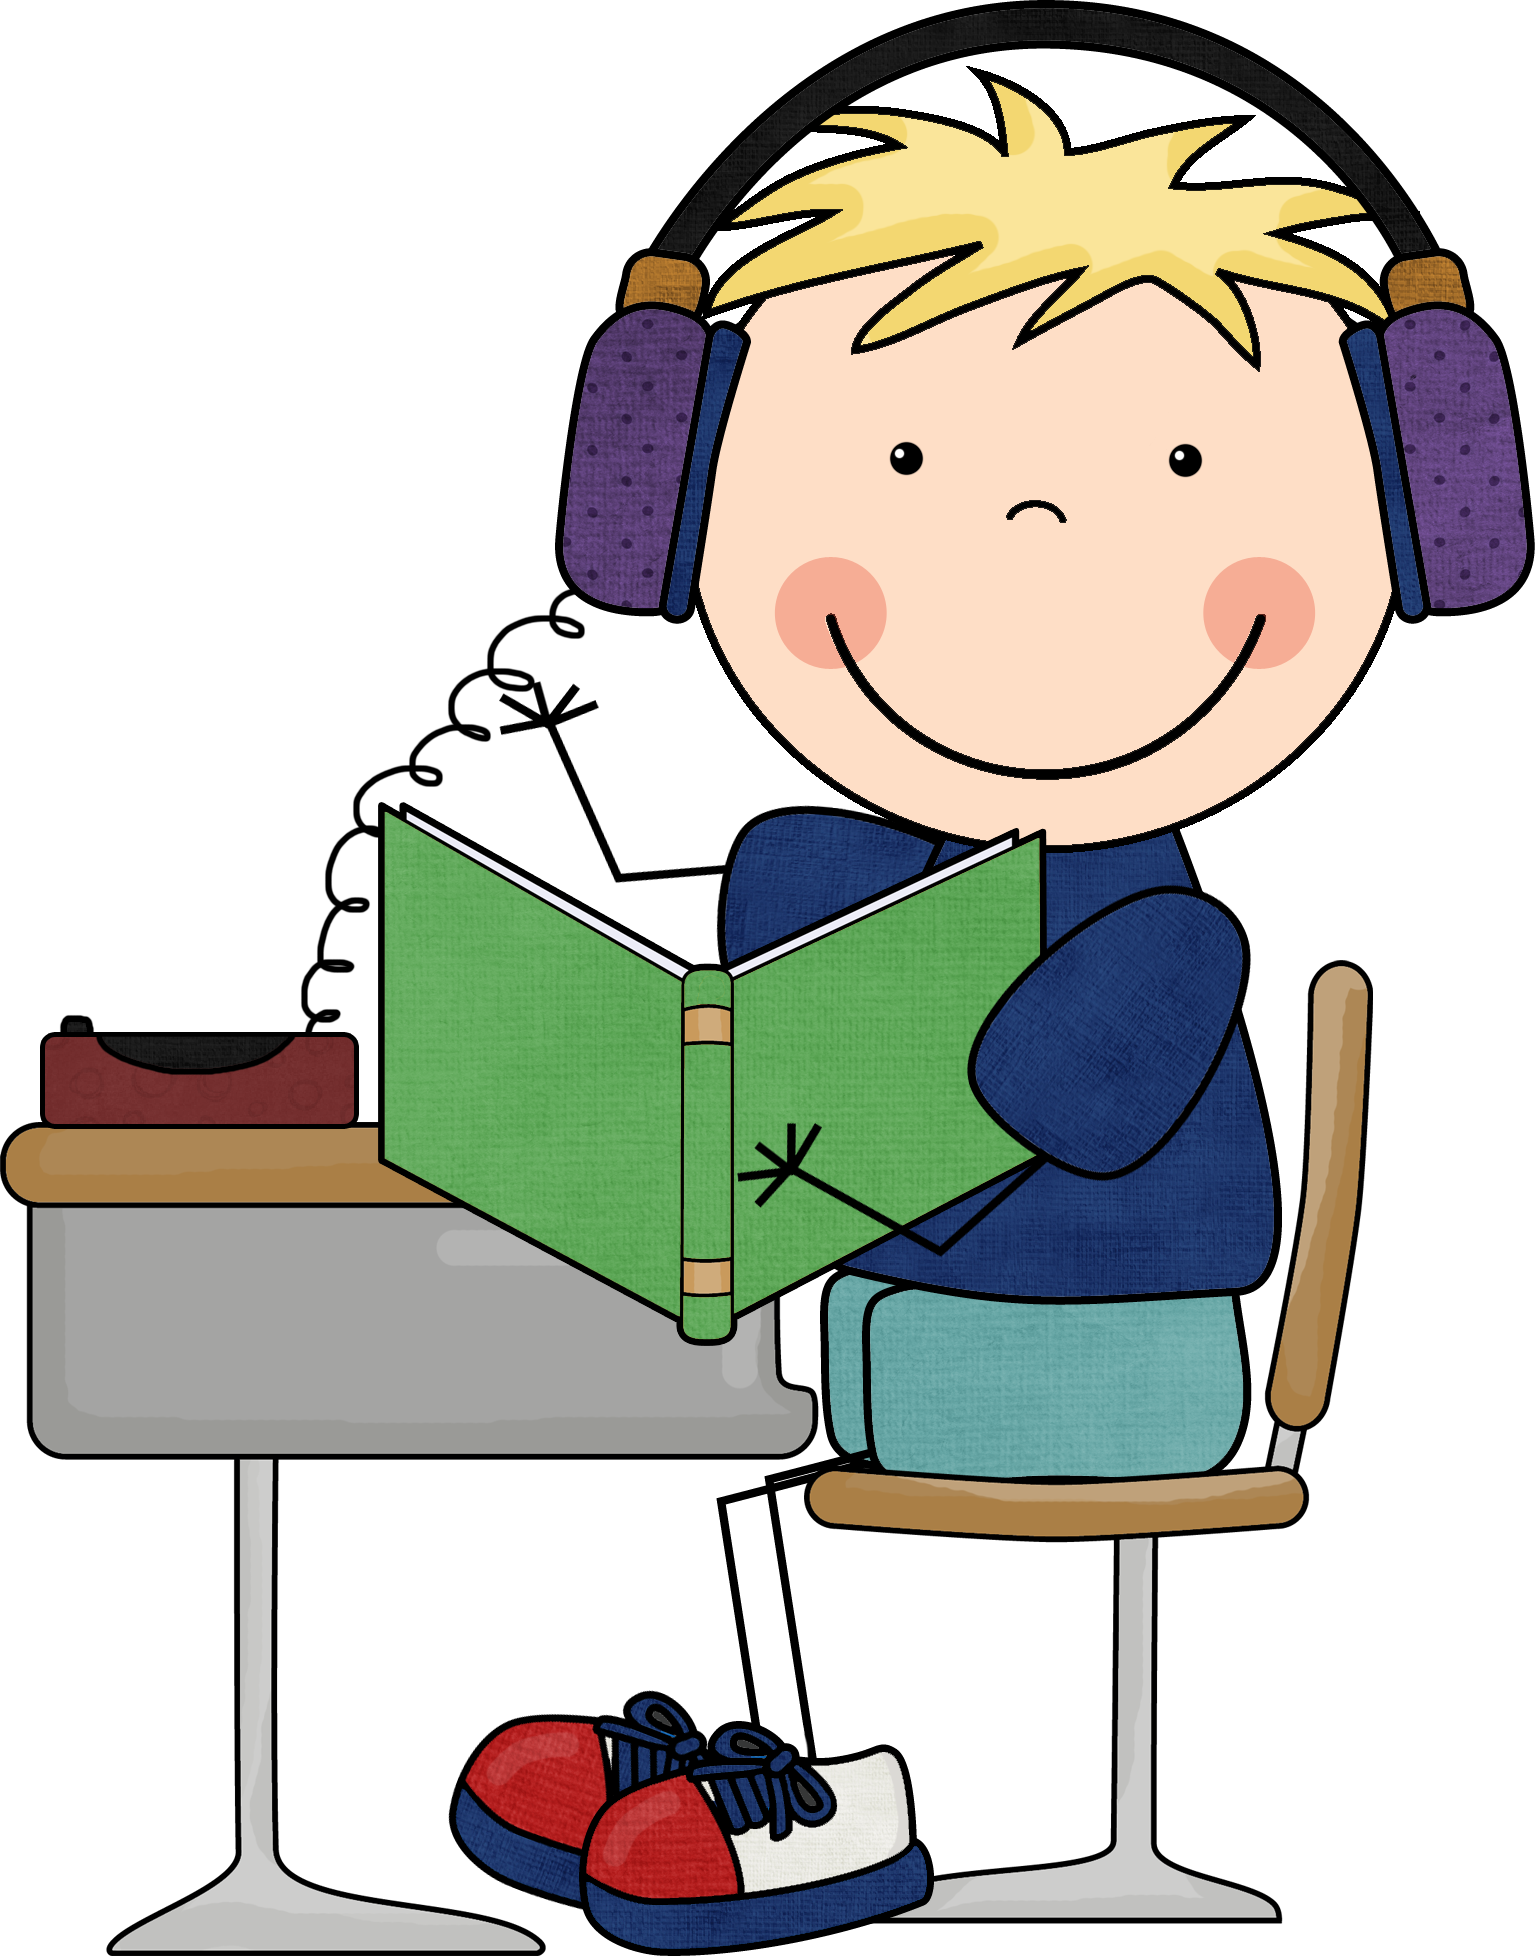 School stuff clipart clipart freeuse library reading_kid3.png 1 535×1 956 pixels | Clip art | Pinterest | Clip ... clipart freeuse library